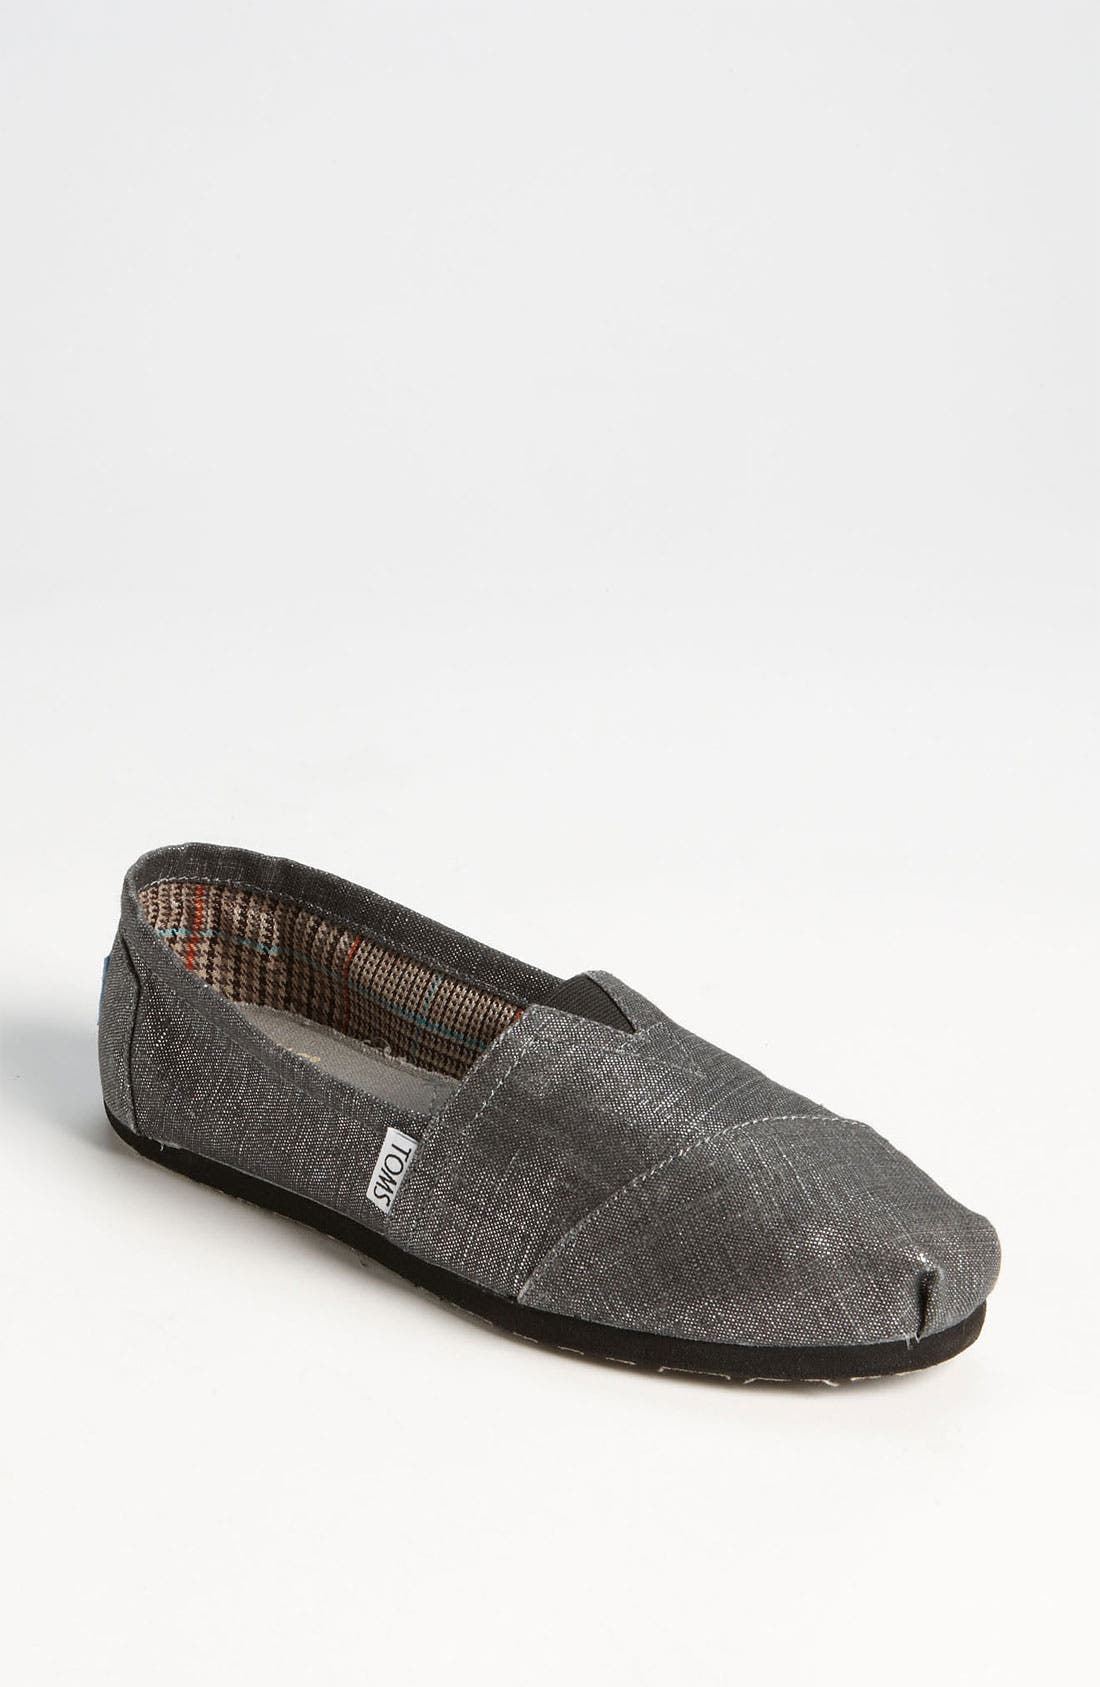 Alternate Image 1 Selected - TOMS Metallic Linen Slip-On (Women)